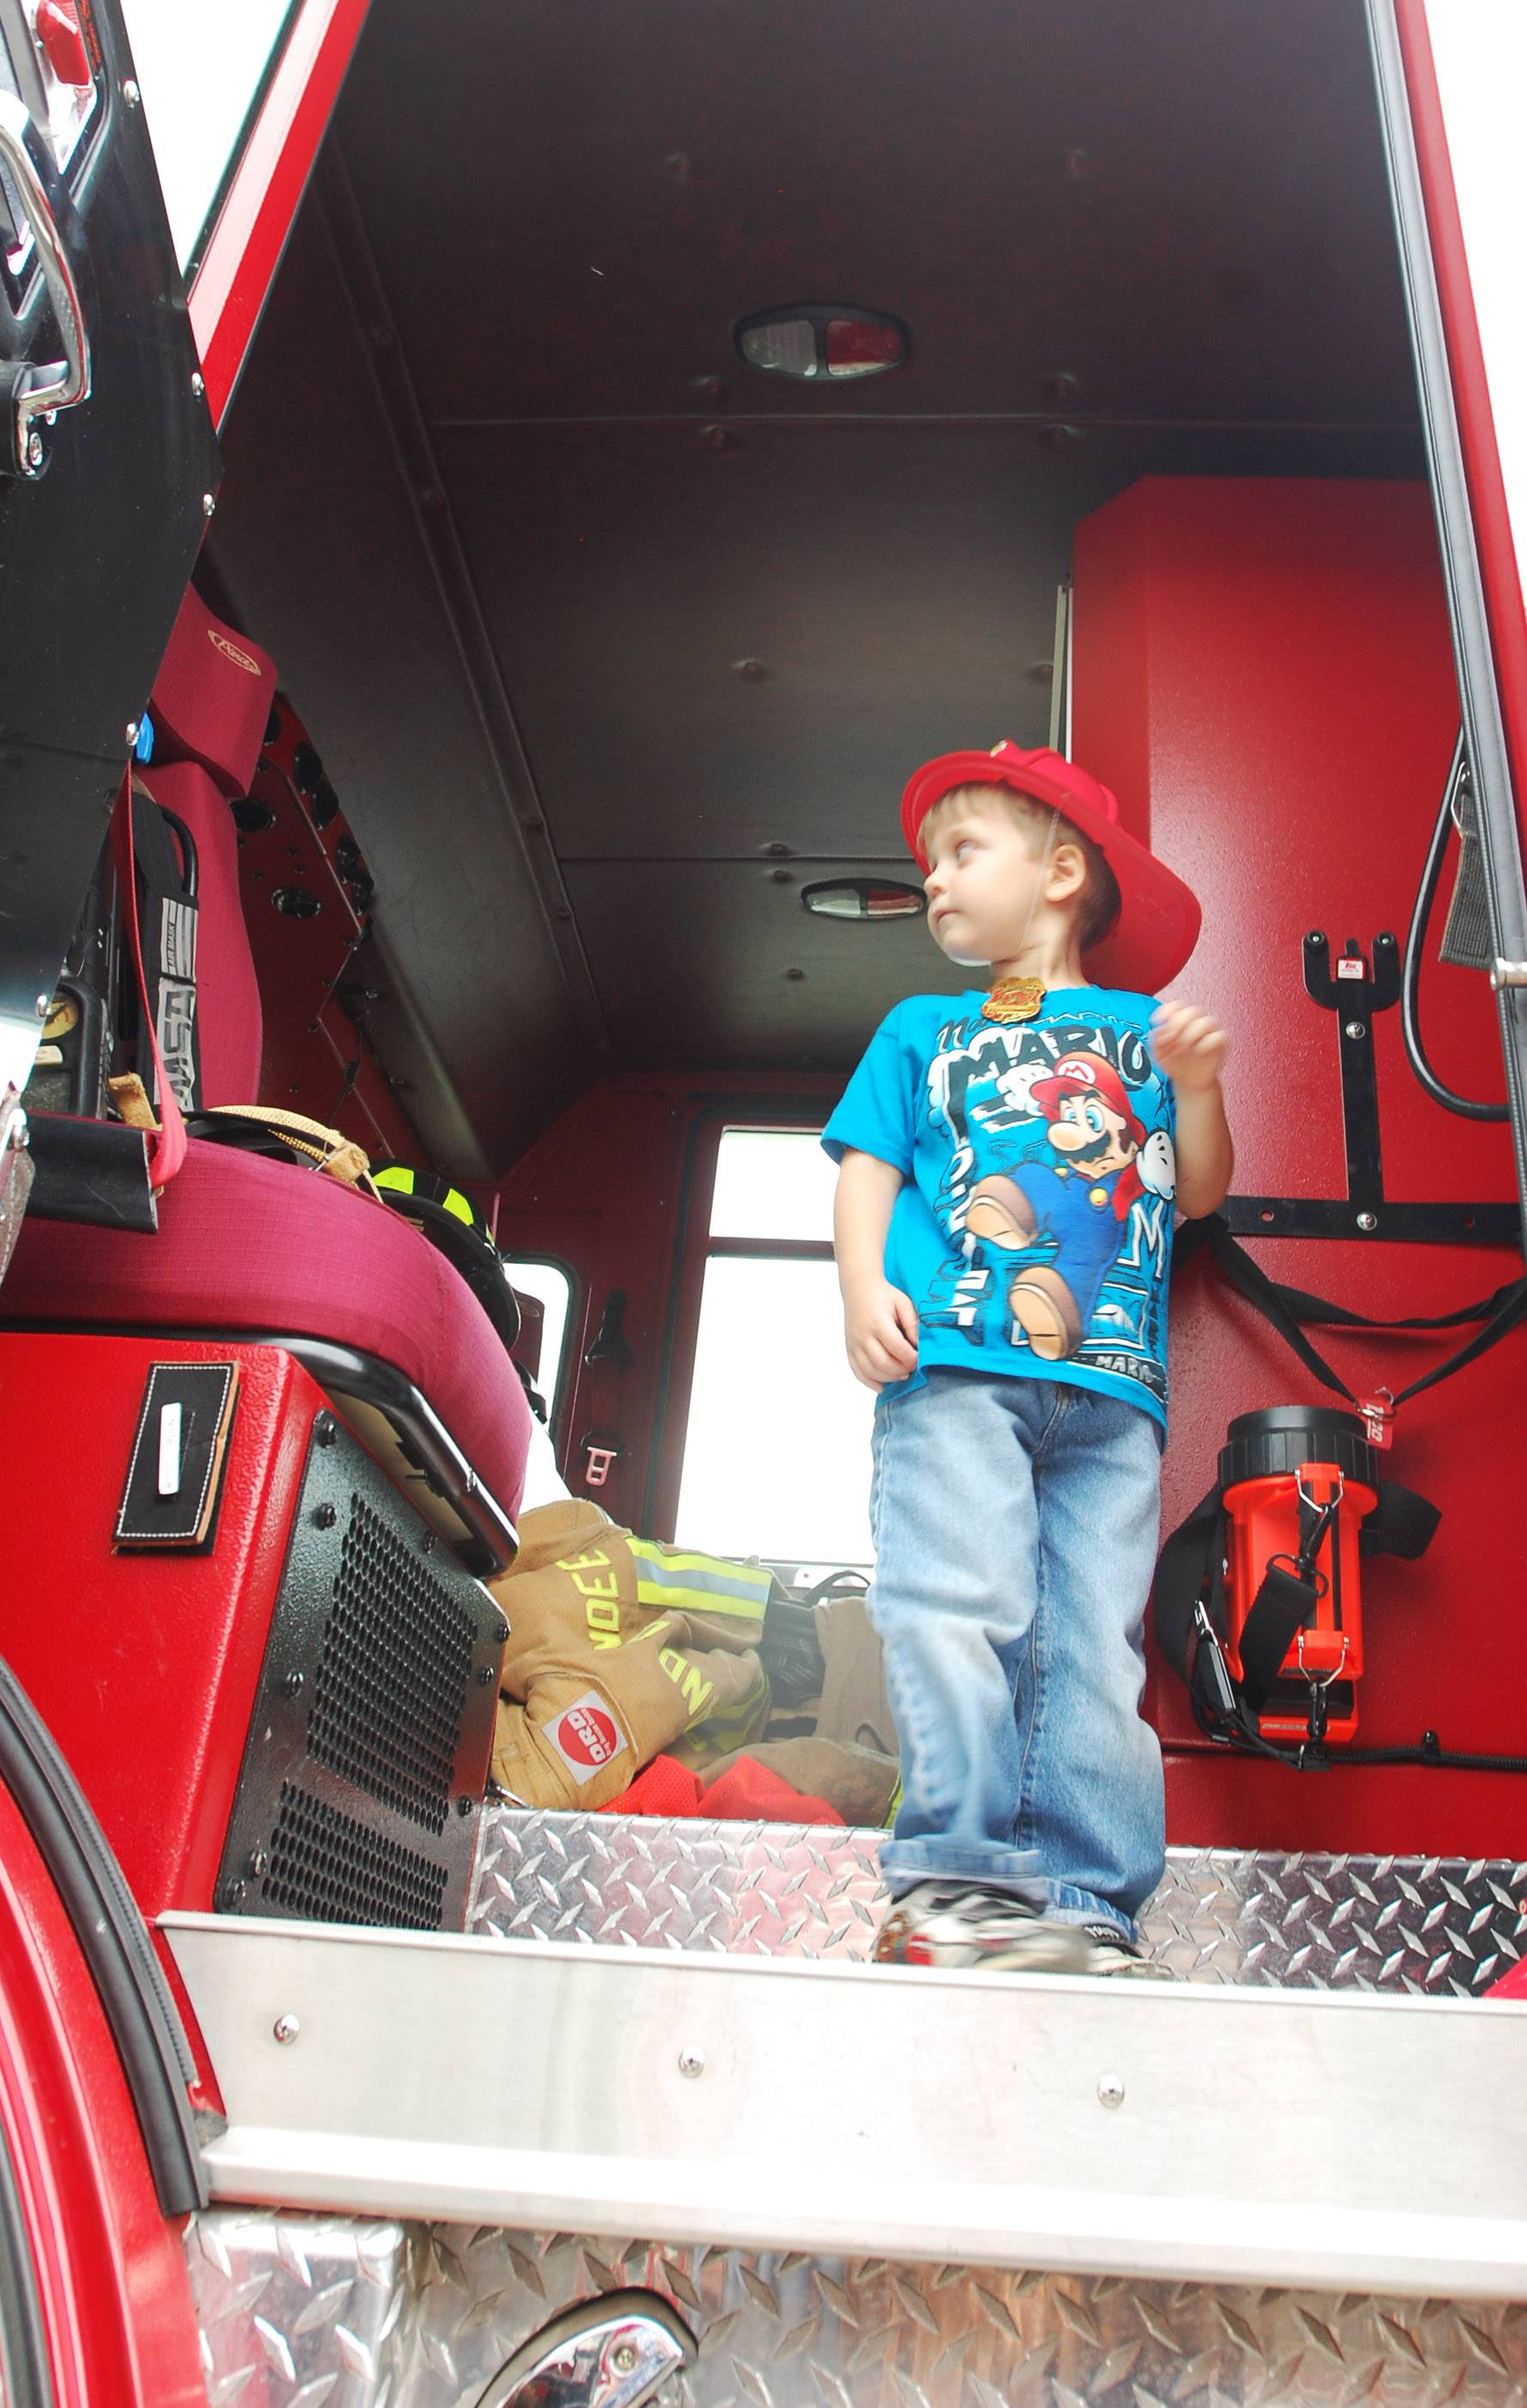 Mason Wayeshe, 5, of Elgin surveys his surroundings from the doorway of a fire truck at last year's Corn Roast fundraiser at Randy´s Vegetables in Sleepy Hollow. Randy's teamed with the Sleepy Hollow Police Department to raise money for Special Olympics Illinois.